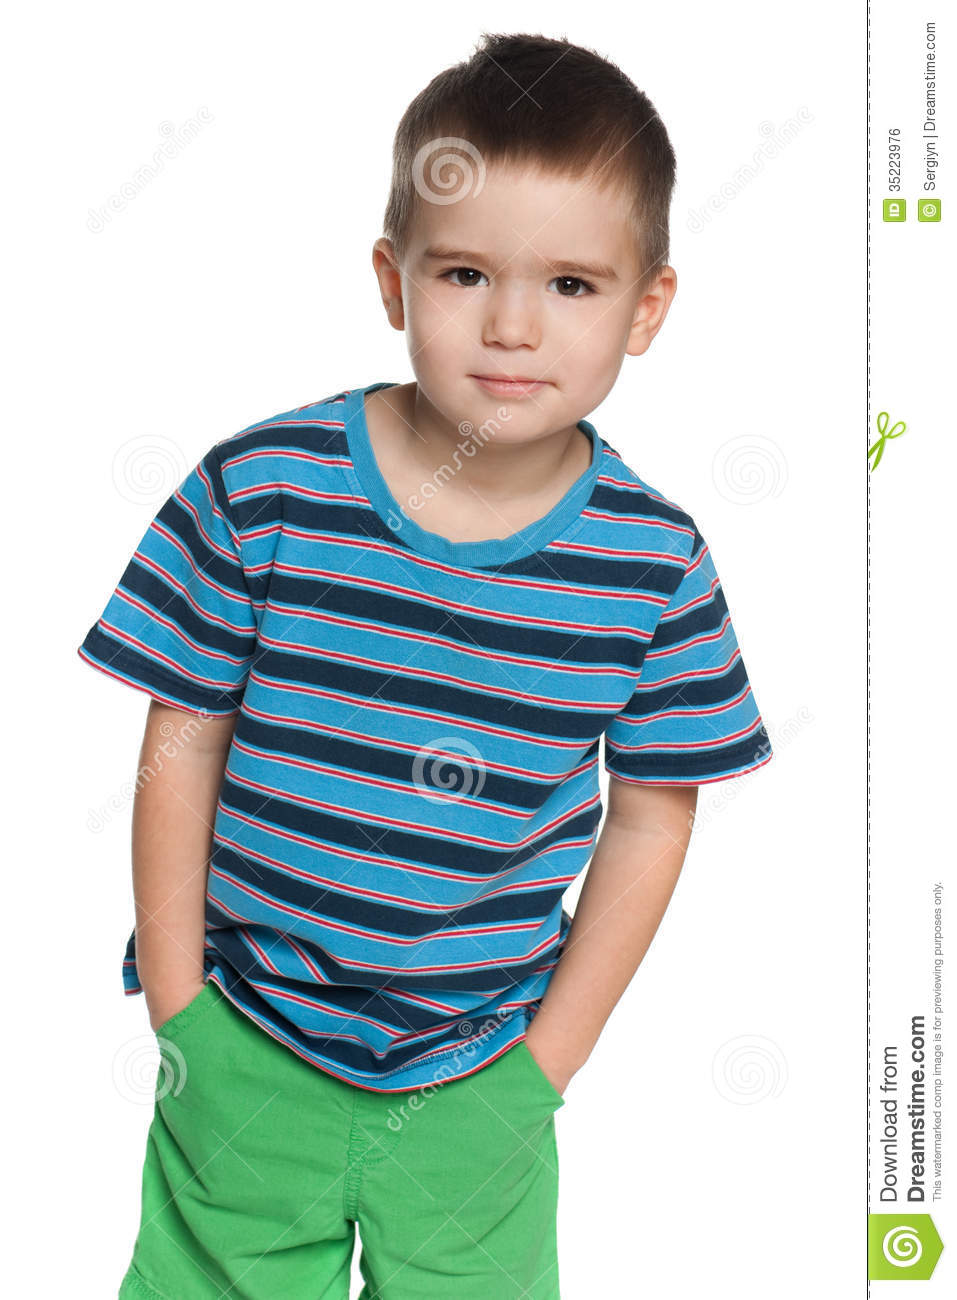 Cute small boy stock photo. Image of white, front, fashion ...